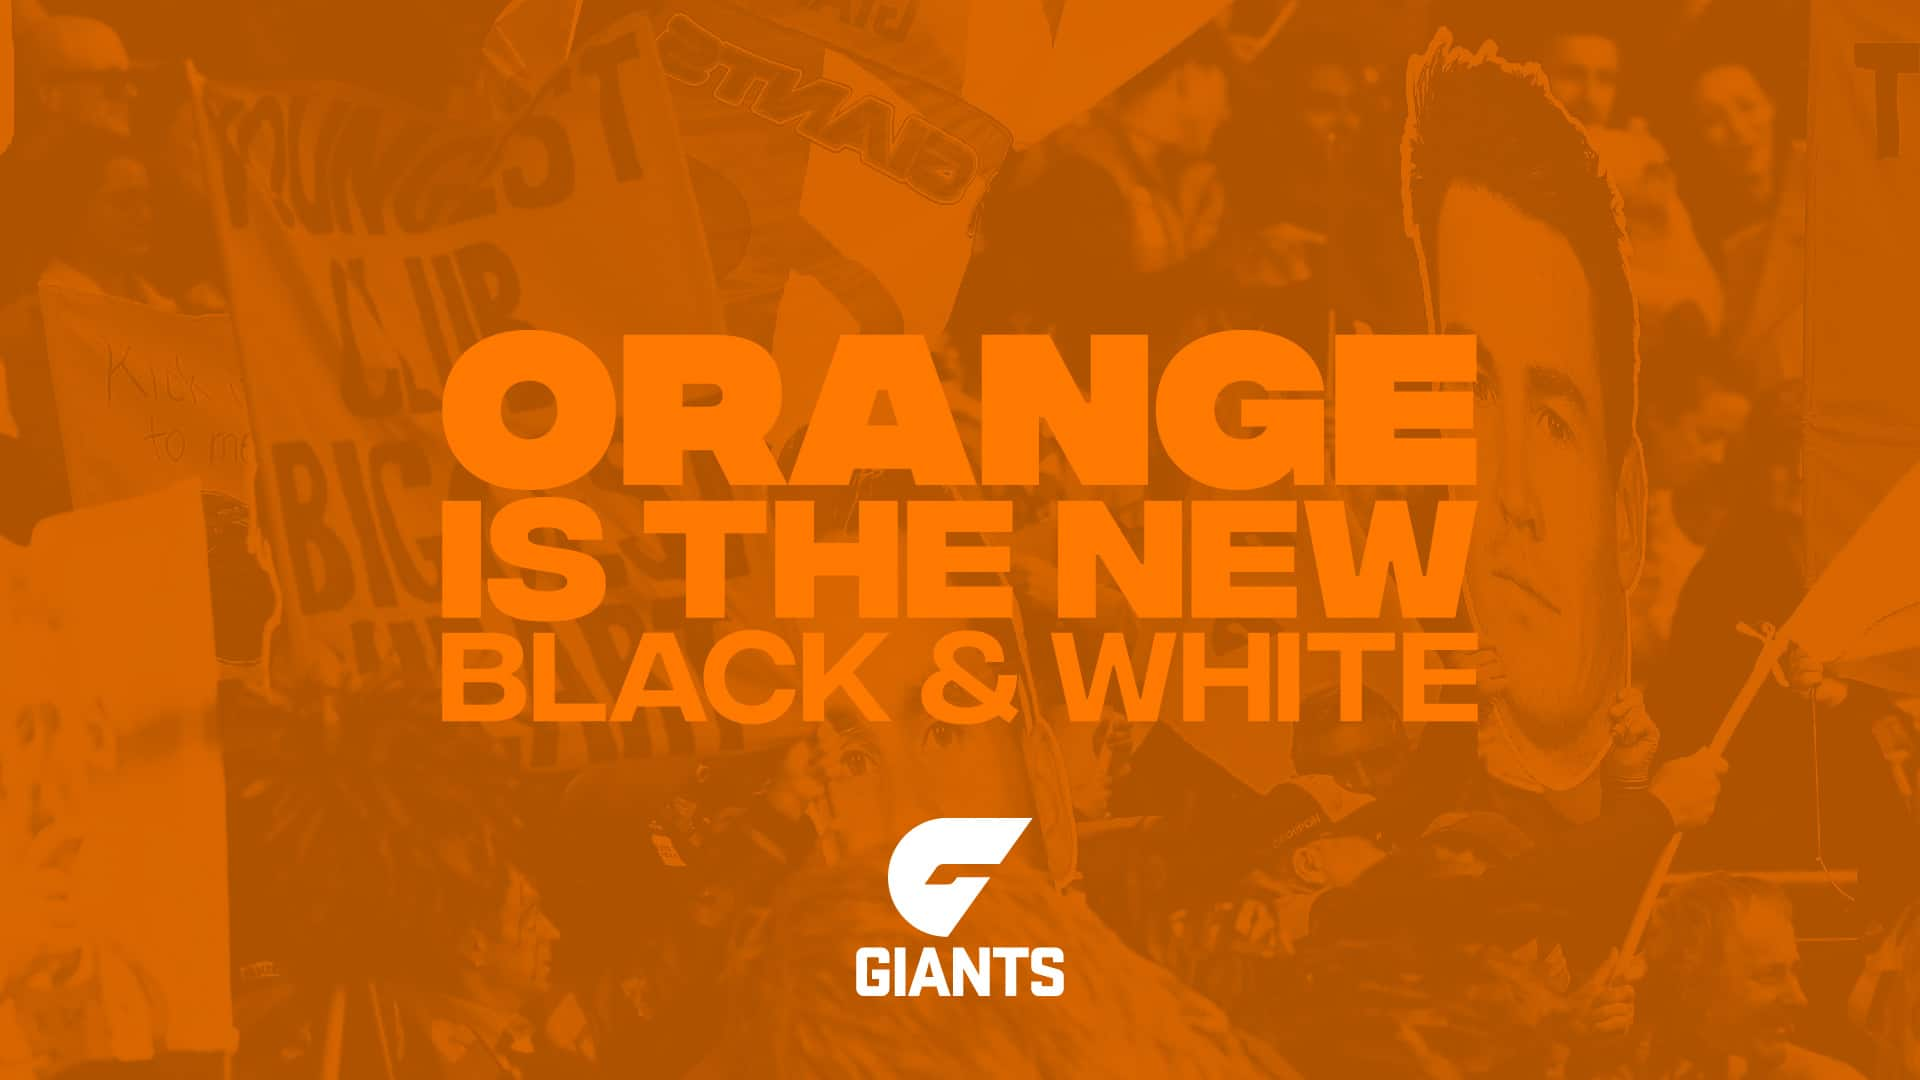 Orange Is The New Black New Season 2020.Orange Is The New Black And White Gwsgiants Com Au